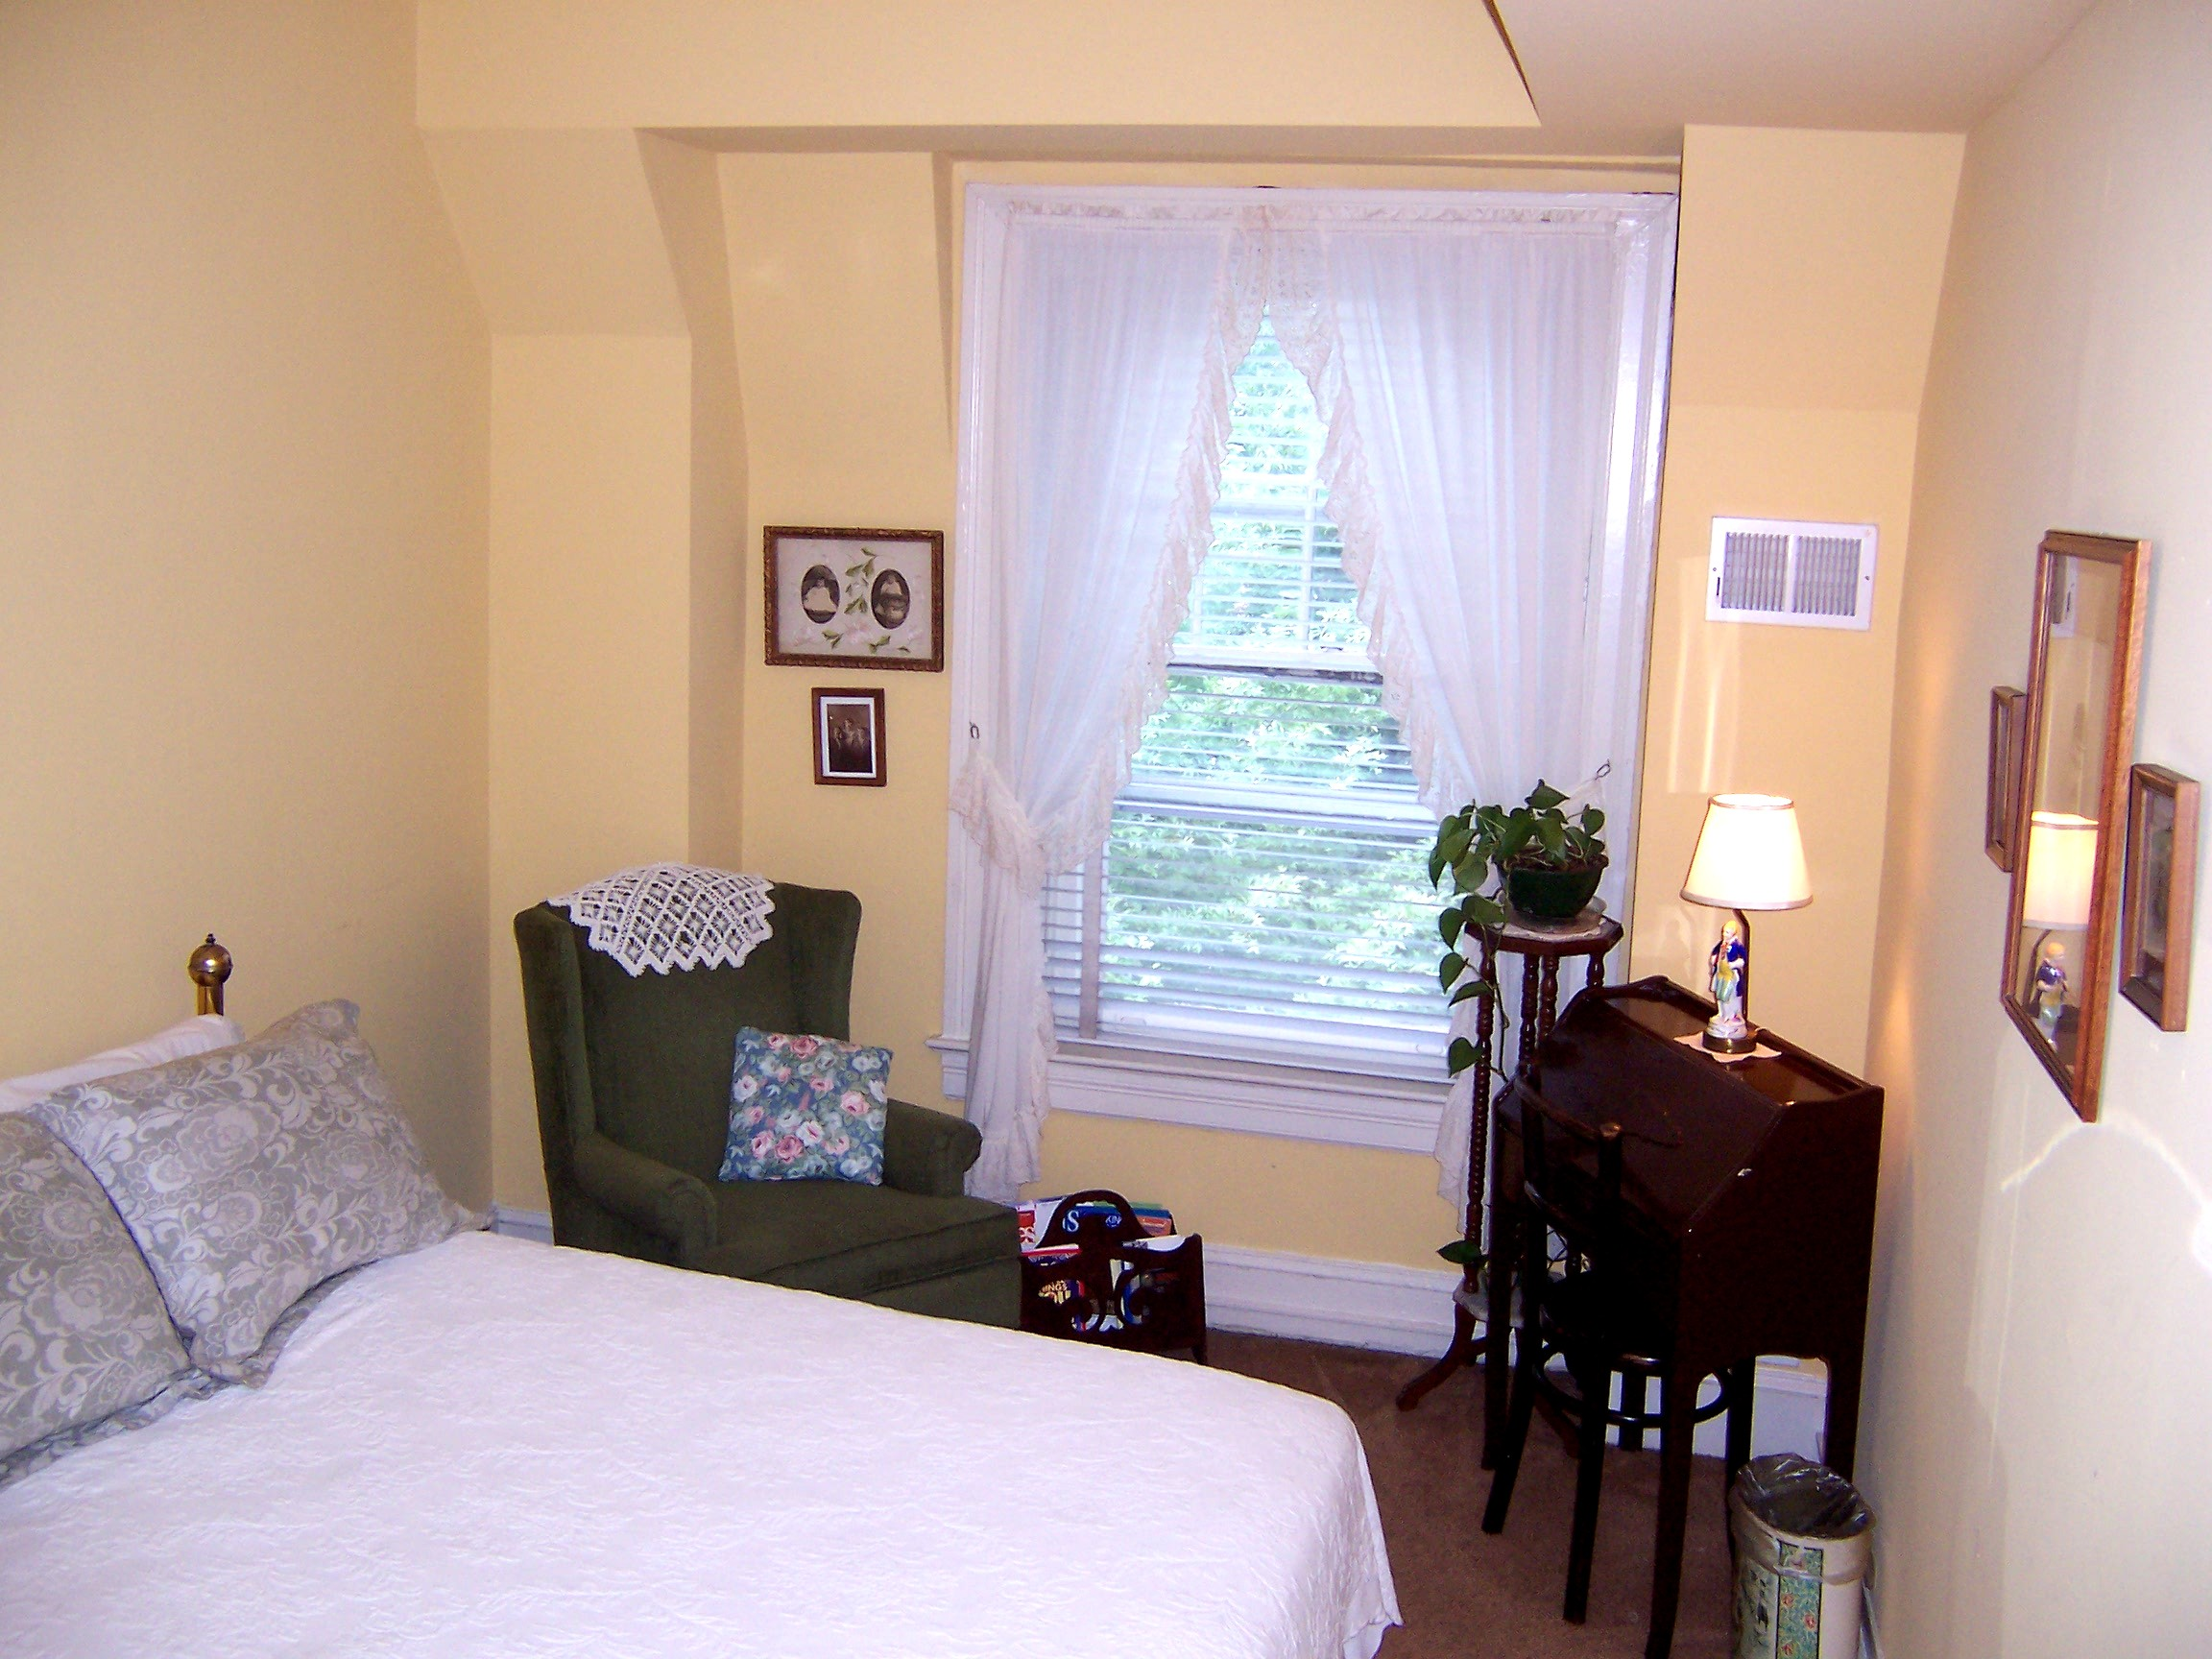 Small bedroom with amenities and window view